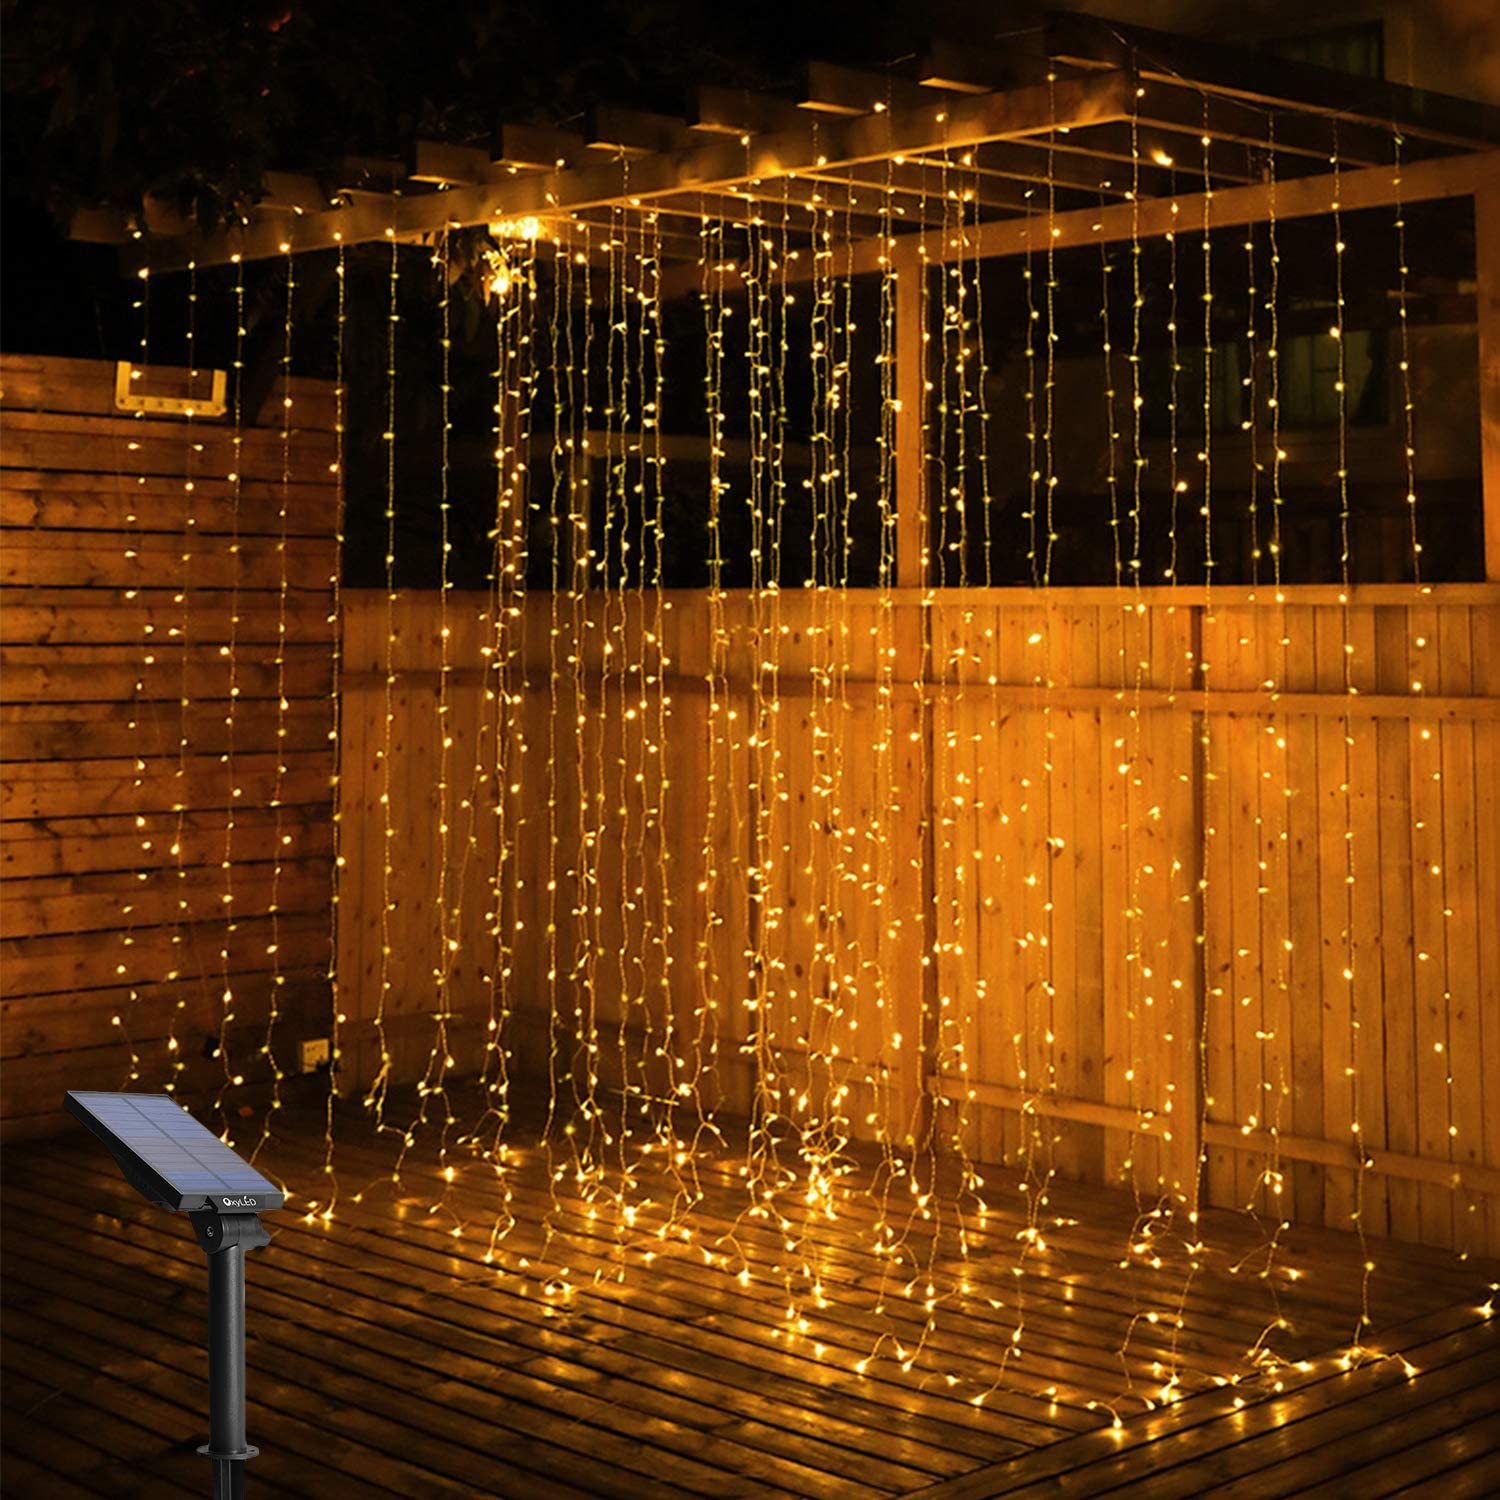 Solar Curtain String Lights Outdoor, OxyLED 300 LED Fairy Window String Lights Solar Powered IP65 Waterproof, Twinkle String Lights 8 Modes for Home Garden Patio Porch Backyard Wedding Party Christmas